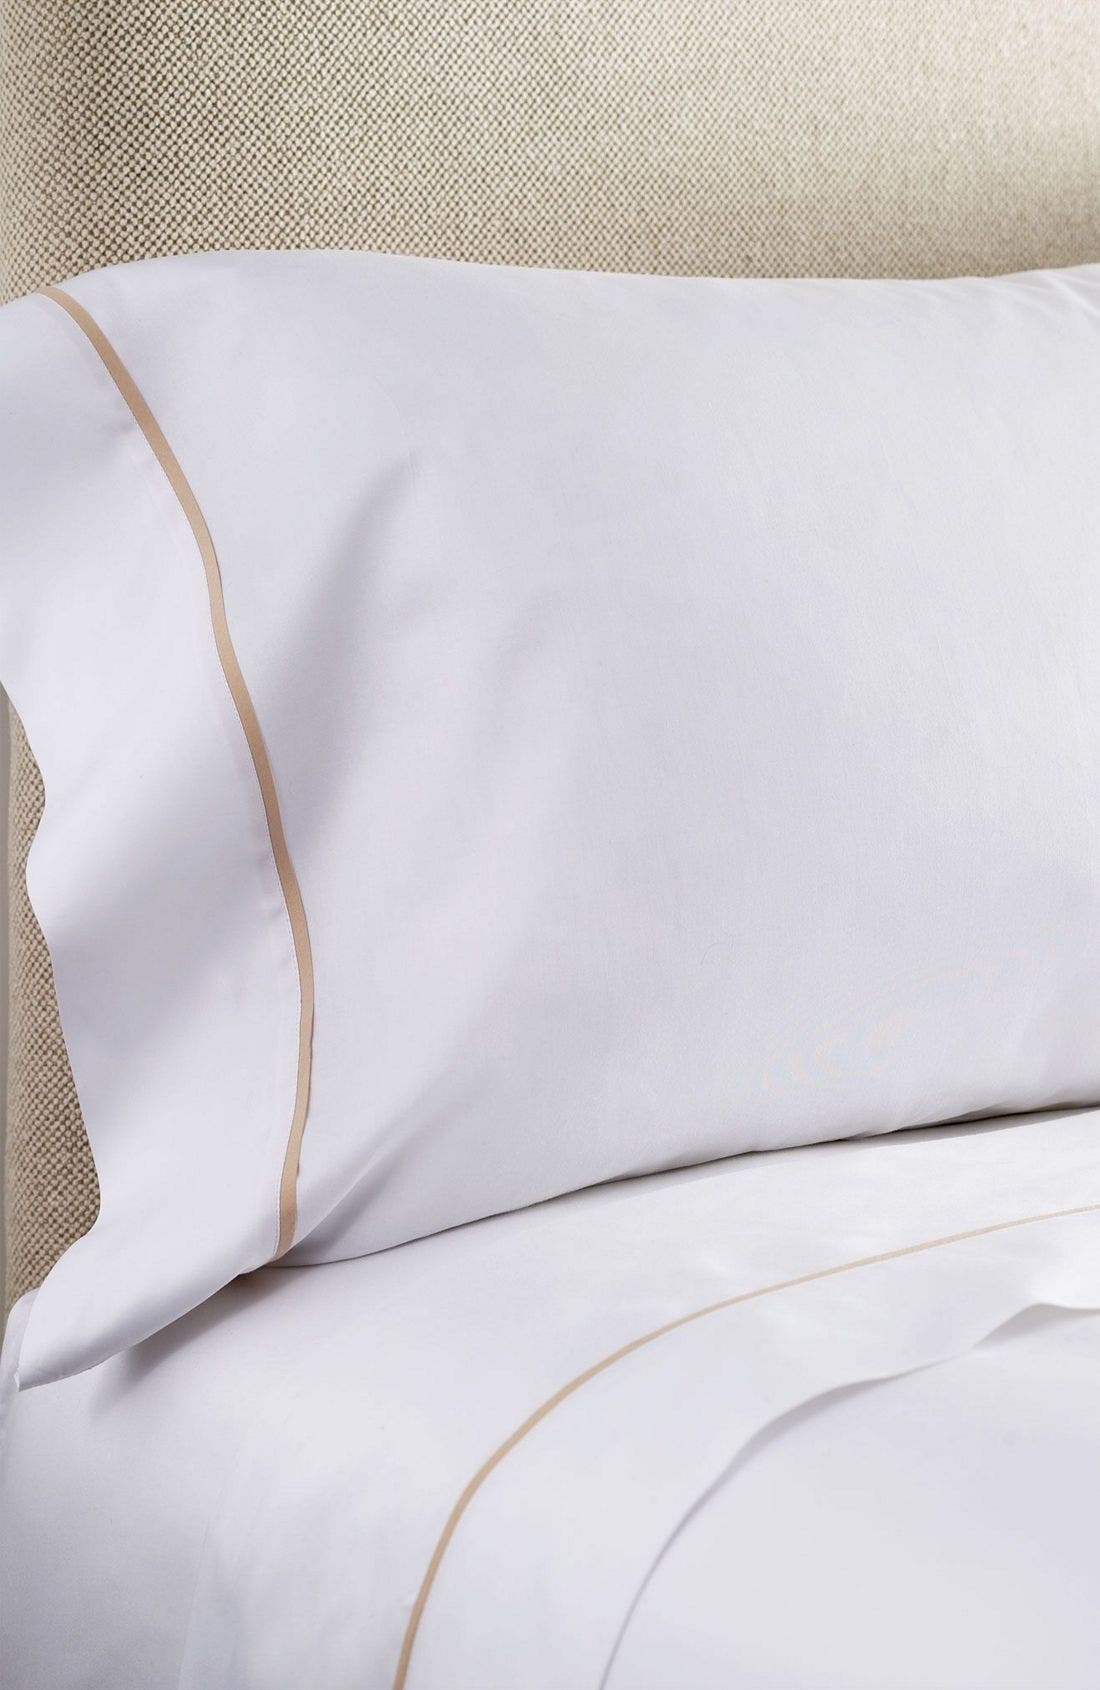 Westin Heavenly Bed<sup>®</sup> 300 Thread Count Egyptian Cotton Luxe Pillowcase,                             Main thumbnail 1, color,                             WHI